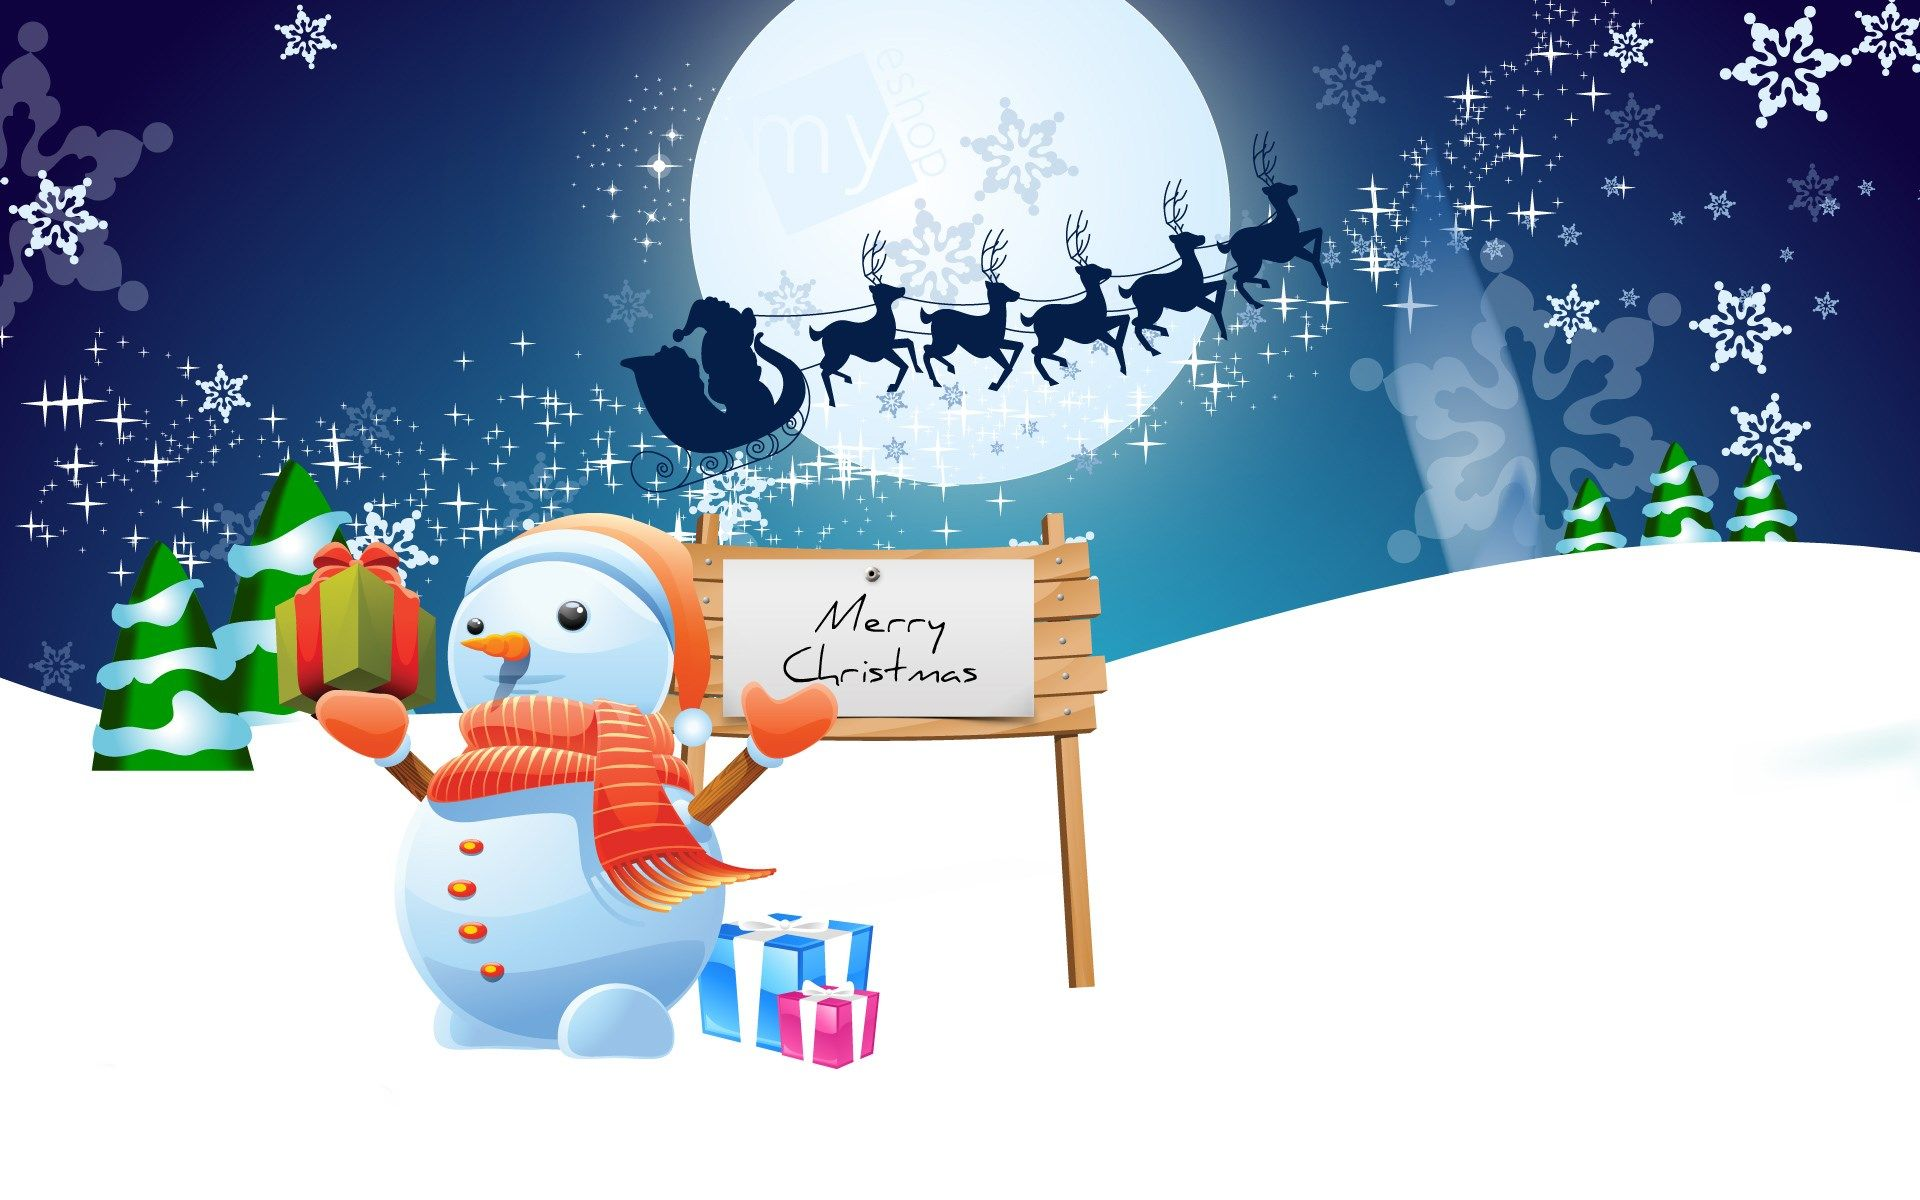 Christmas Hd Wallpapers 1080p High Quality Merry Christmas Wallpaper Merry Christmas Hd Images Christmas Images